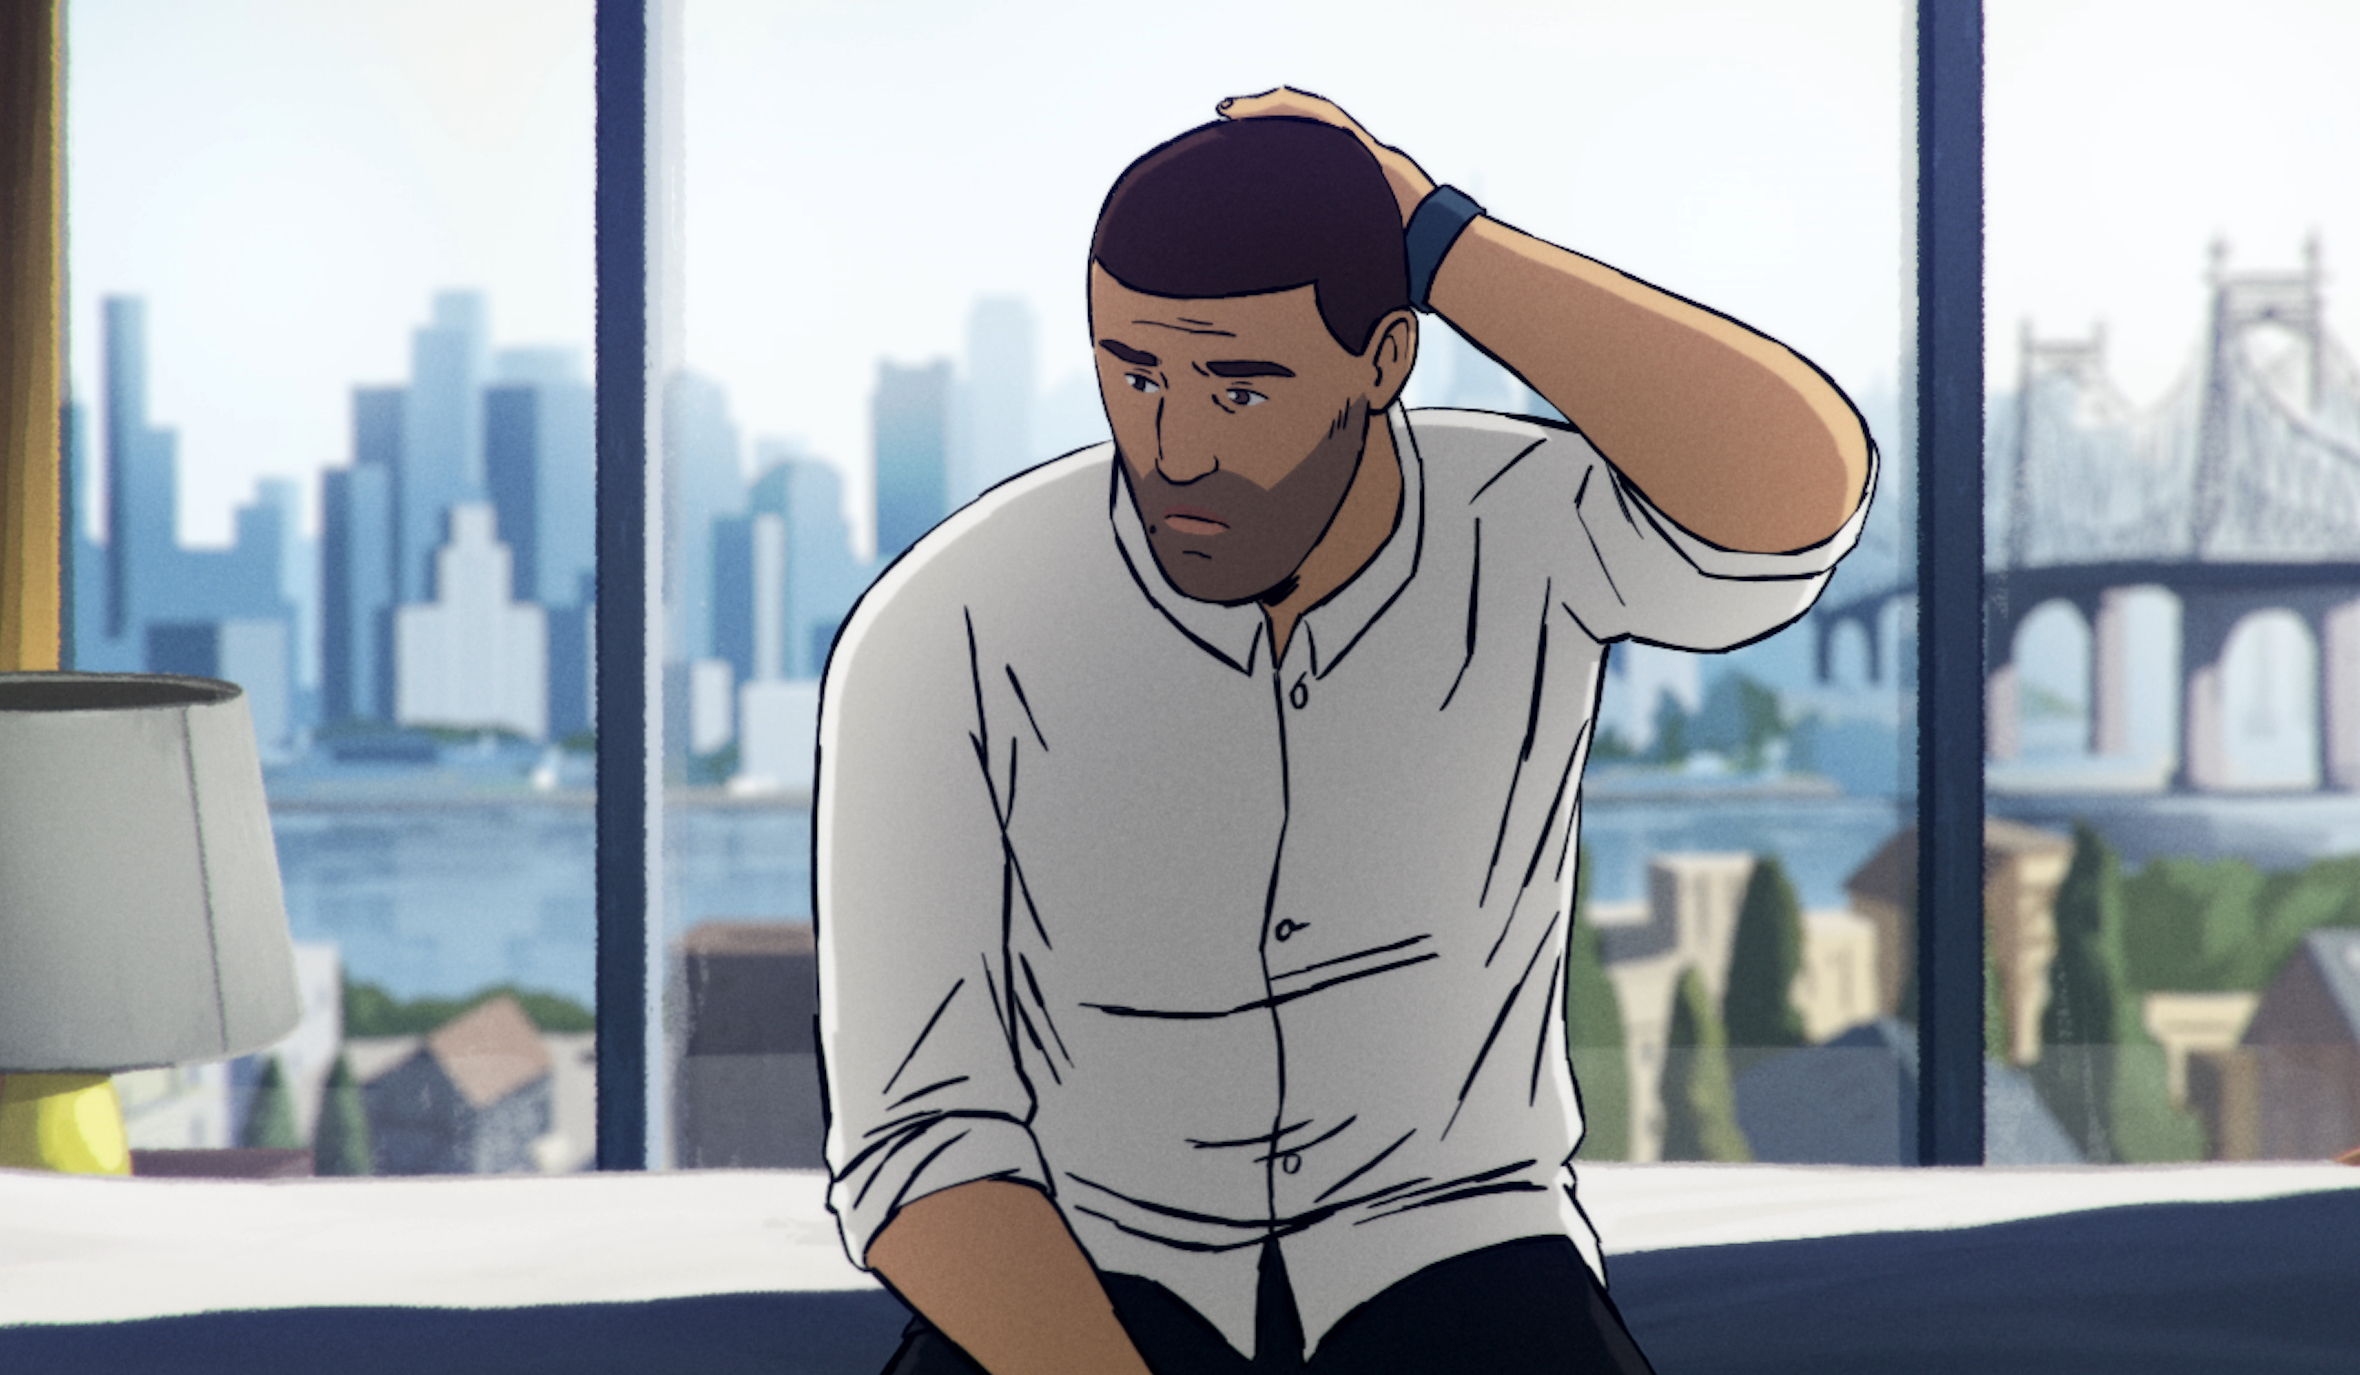 An animated version of a documentary subject from Afghanistan sits on a bed unsurely rubbing the back of his head, with a floor-to-ceiling window showing a city behind him.